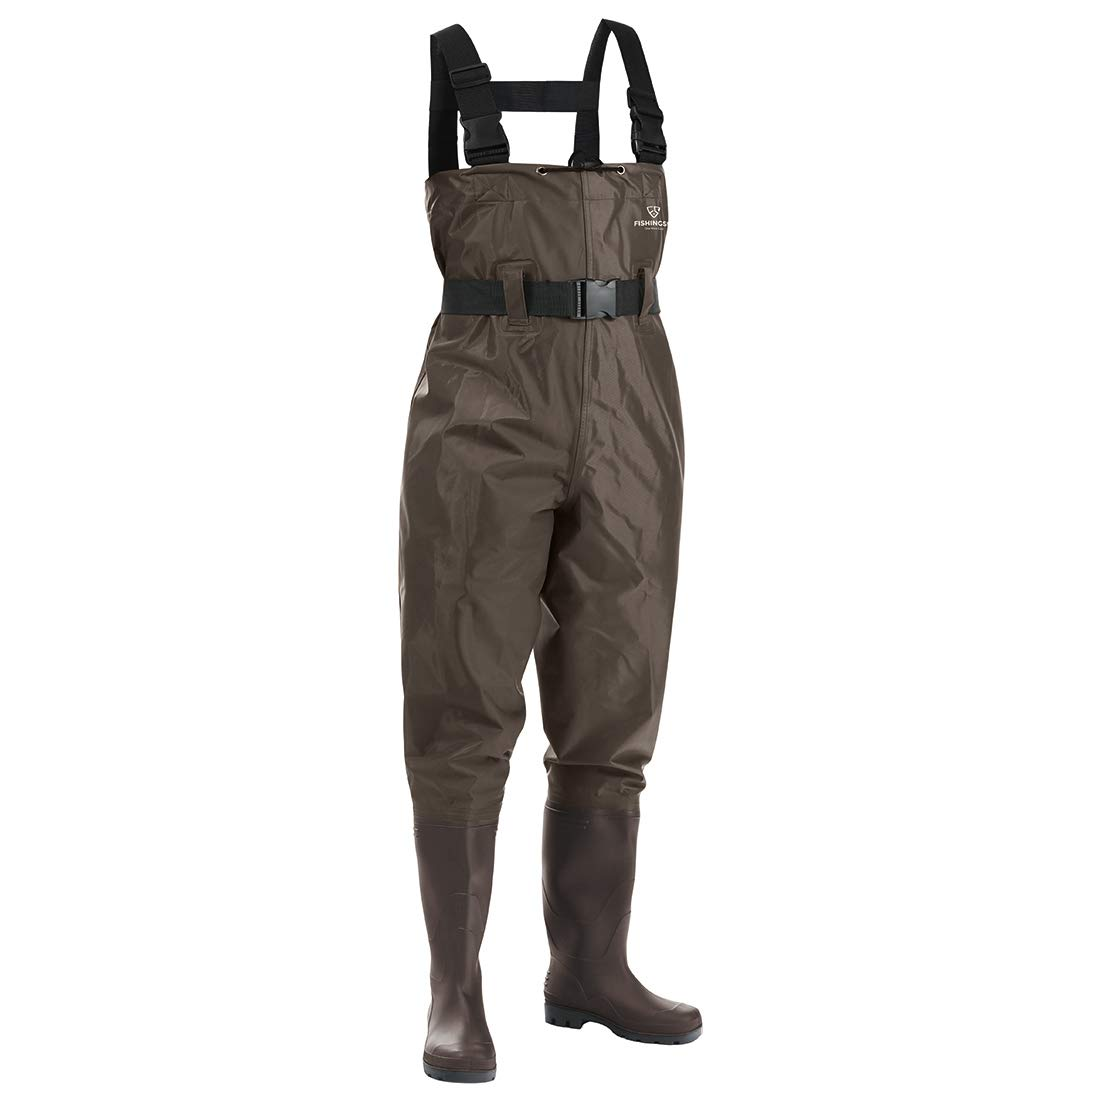 c729a617ab291 Amazon.com : FISHINGSIR Fishing Chest Waders for Men with Boots Mens Womens  Hunting Bootfoot Waterproof Nylon and PVC with Wading Belt : Sports &  Outdoors